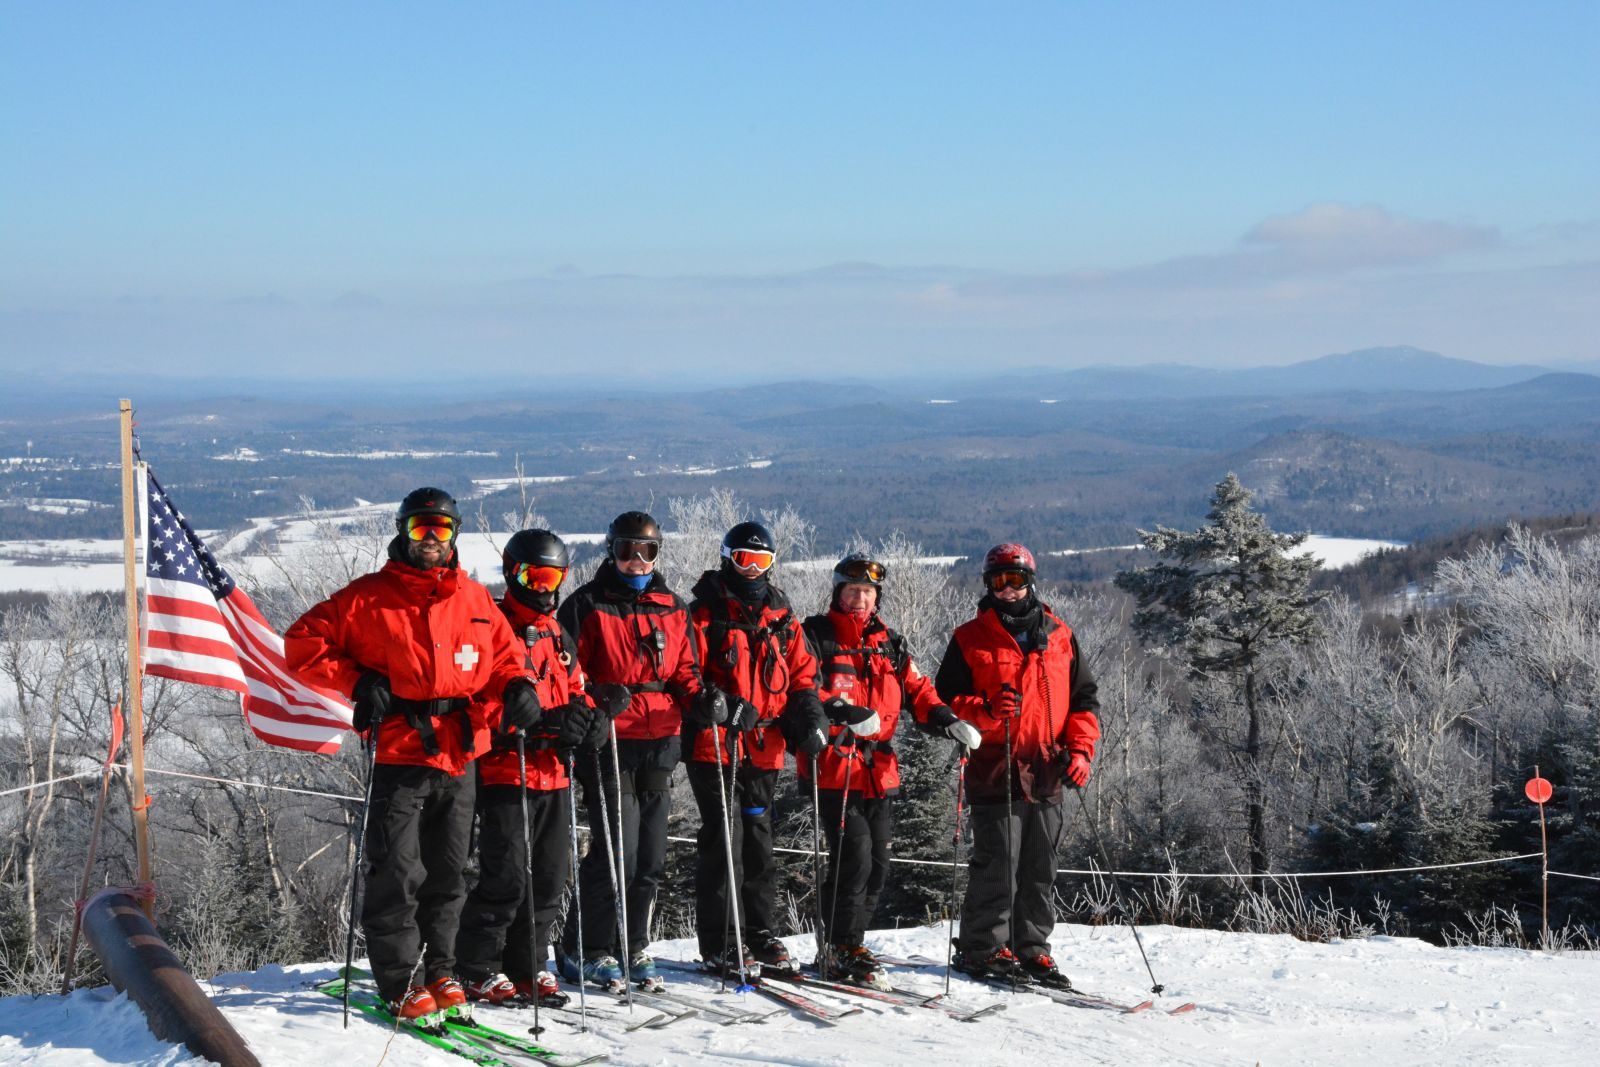 Member of the Big Tupper Ski Patrol, from left, Adam Hurteau, Mitch Harriman, Anne Maltais, Ted Merrihew, Charlie Hoffer, and Phil Jones, take a break at the top of Chair 2 for a group shot